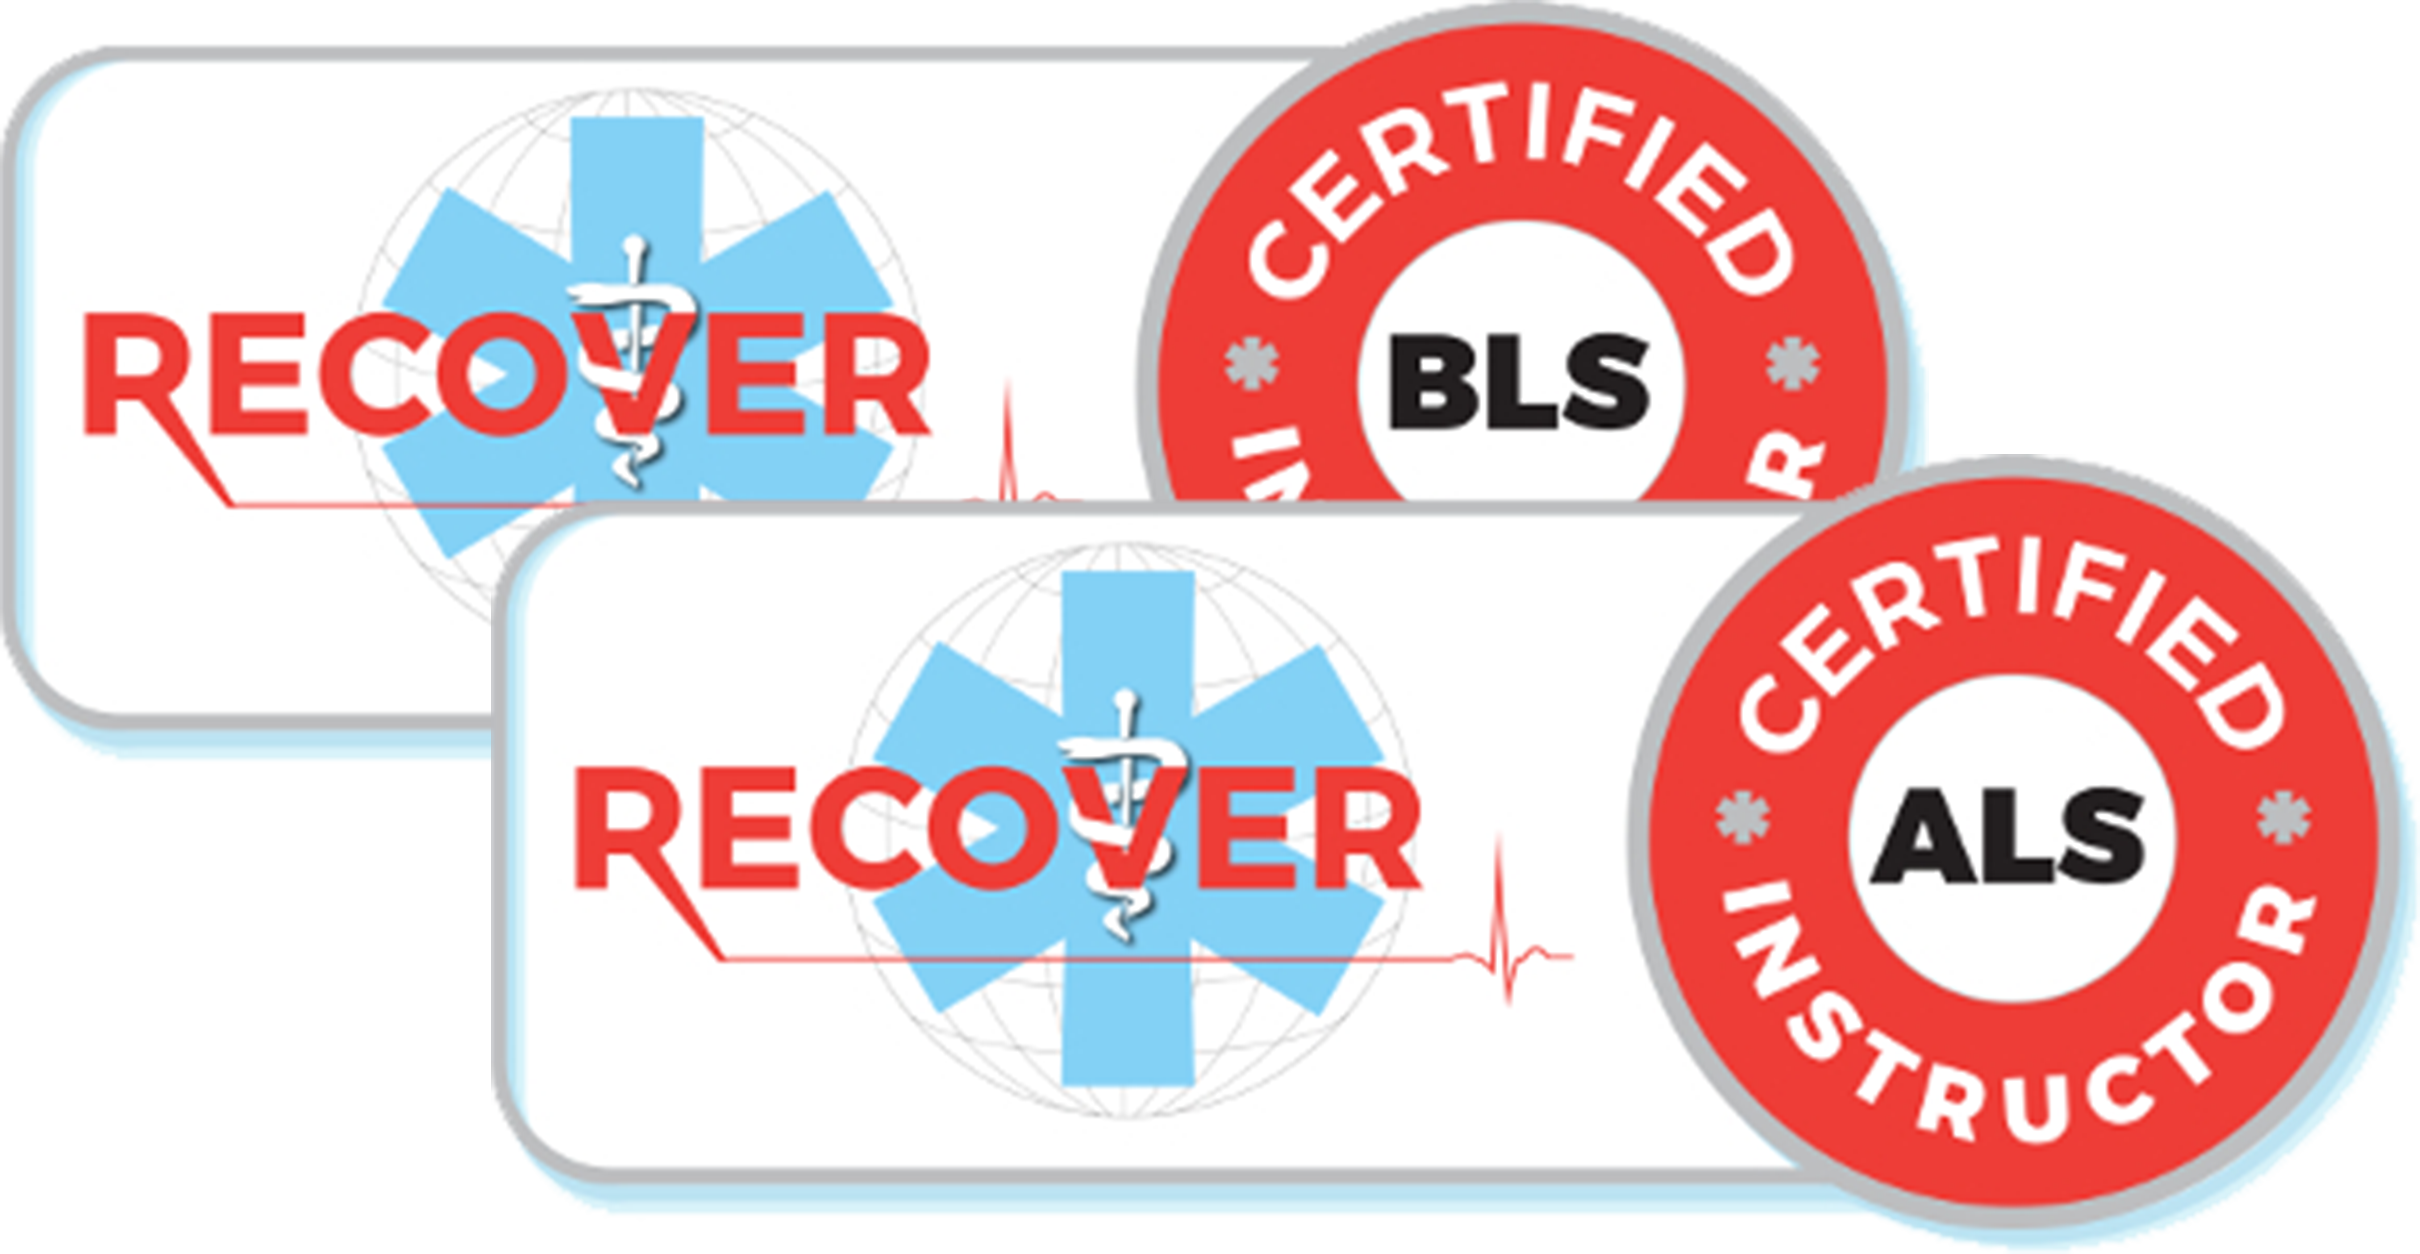 RECOVER Certified BLS And ALS Instructor Status Activations